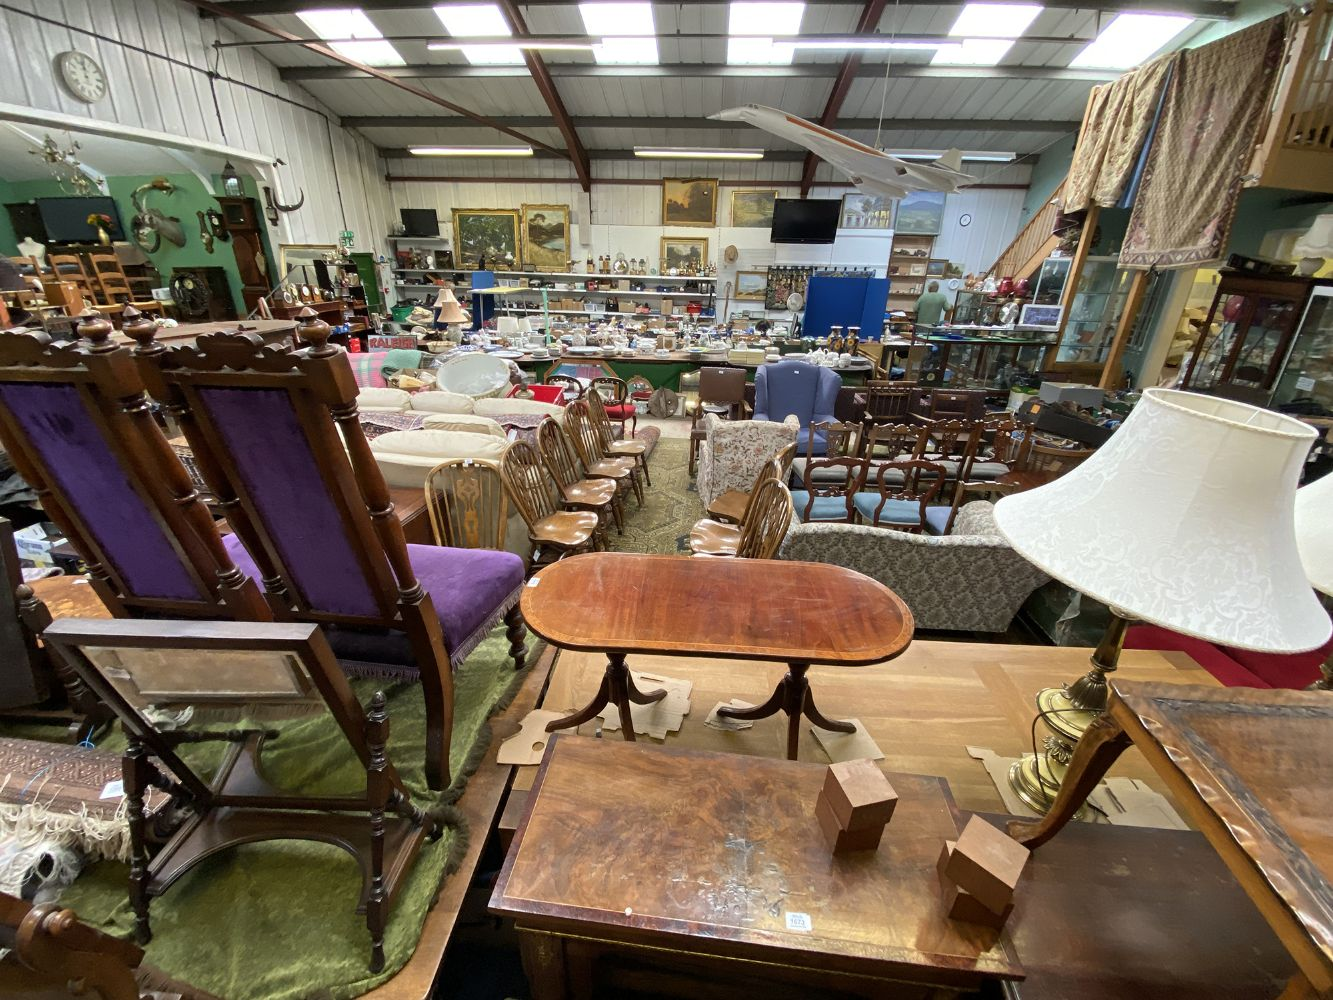 Online Only Late September Auction of Miscellaneous Objets d'Art, Collectables, Porcelain, Glass, Antique & Country Furniture